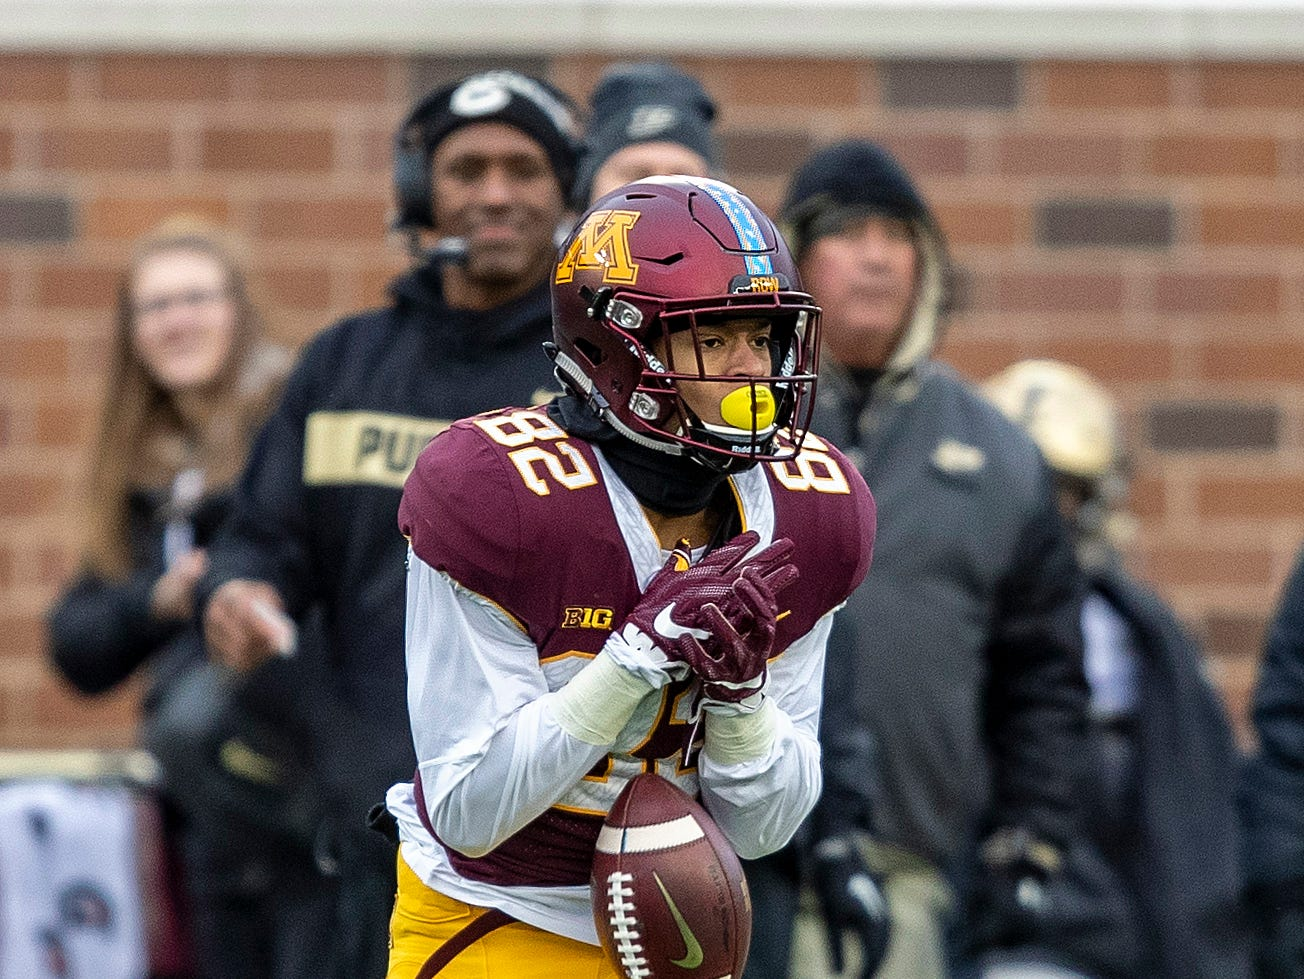 Nov 10, 2018; Minneapolis, MN, USA; Minnesota Golden Gophers wide receiver Demetrius Douglas (82) attempts to catch a pass in the first half against the Purdue Boilermakers at TCF Bank Stadium. Mandatory Credit: Jesse Johnson-USA TODAY Sports